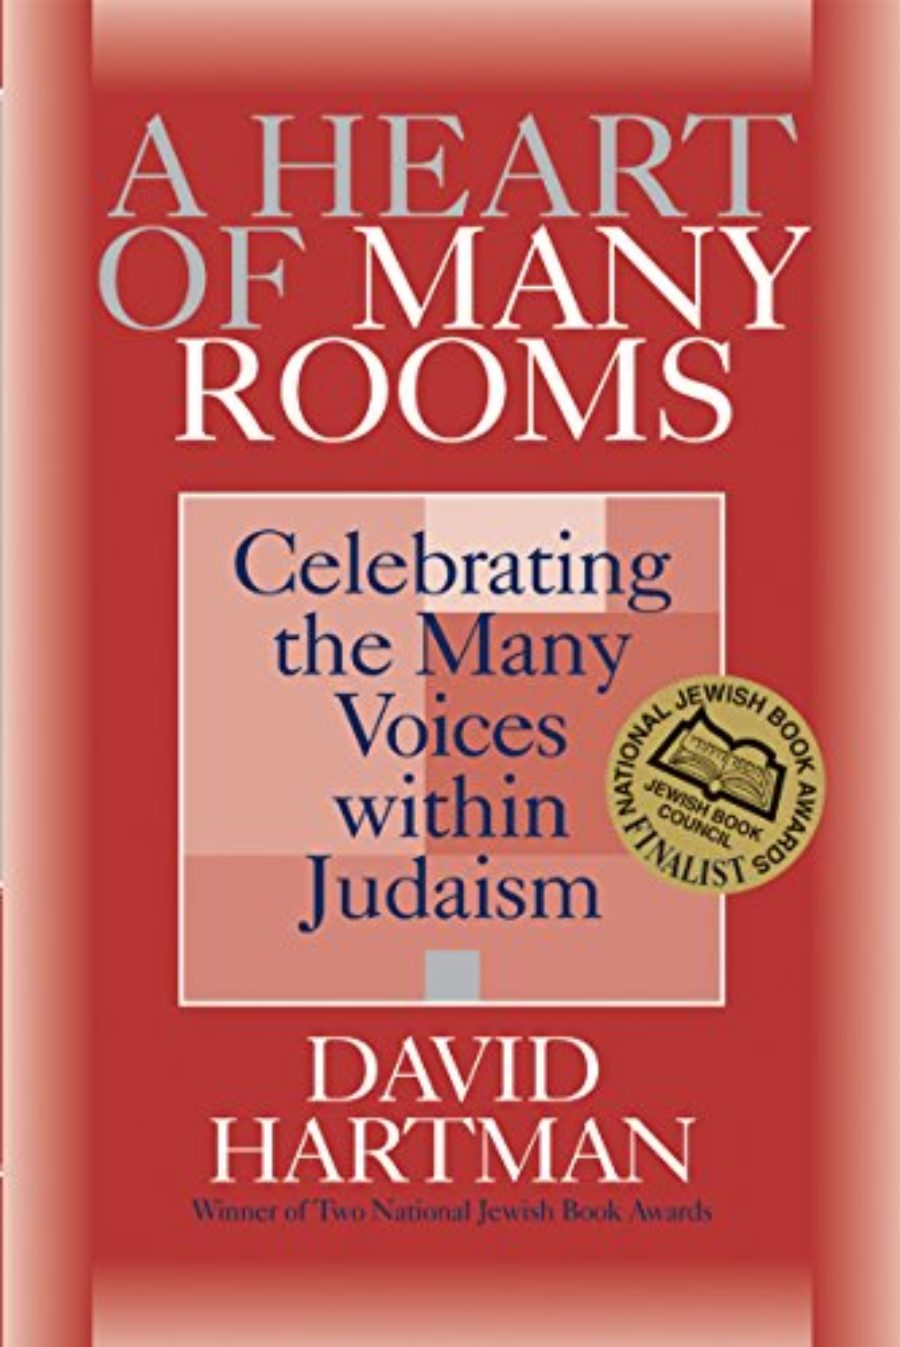 Cover of A Heart of Many Rooms: Celebrating the Many Voices within Judaism